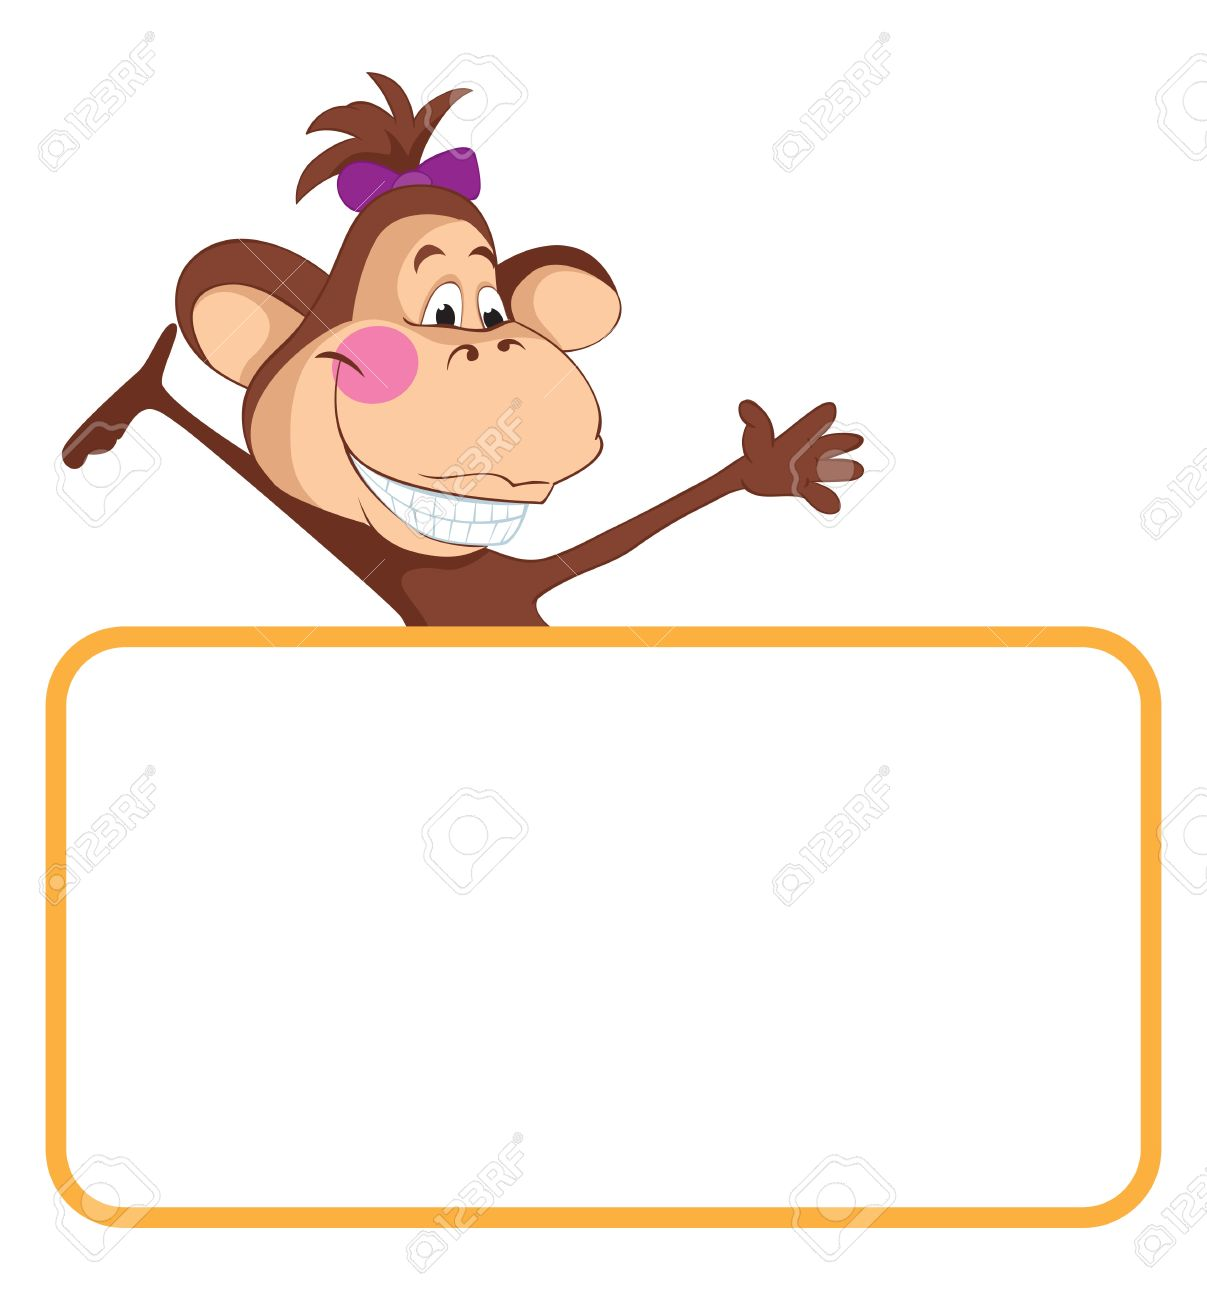 monkey cartoon label stock vector 9607463 - Monkey Picture Frame